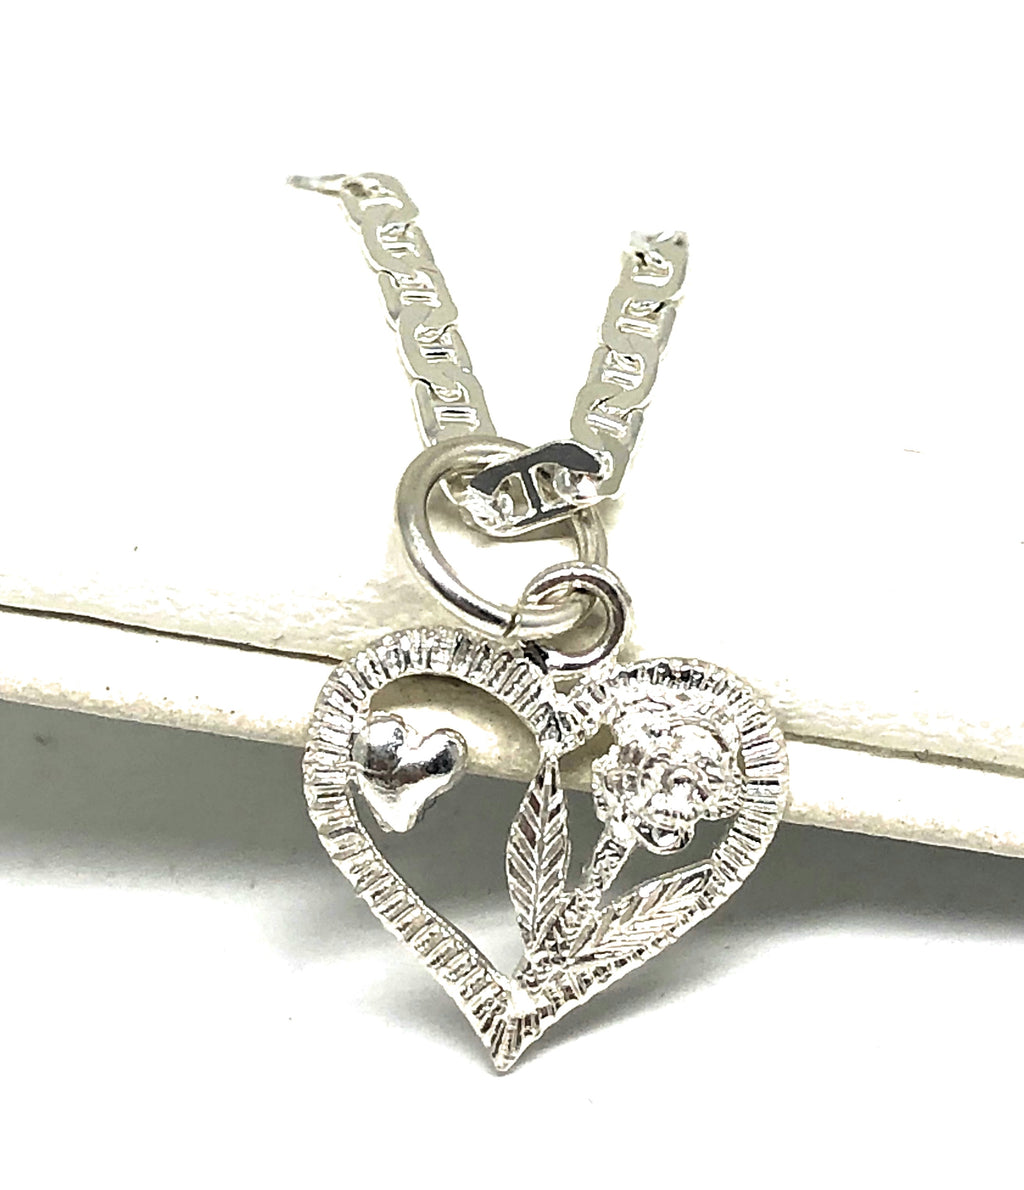 .925 Silver Heart & Rose Pendant Necklace with Chain Options